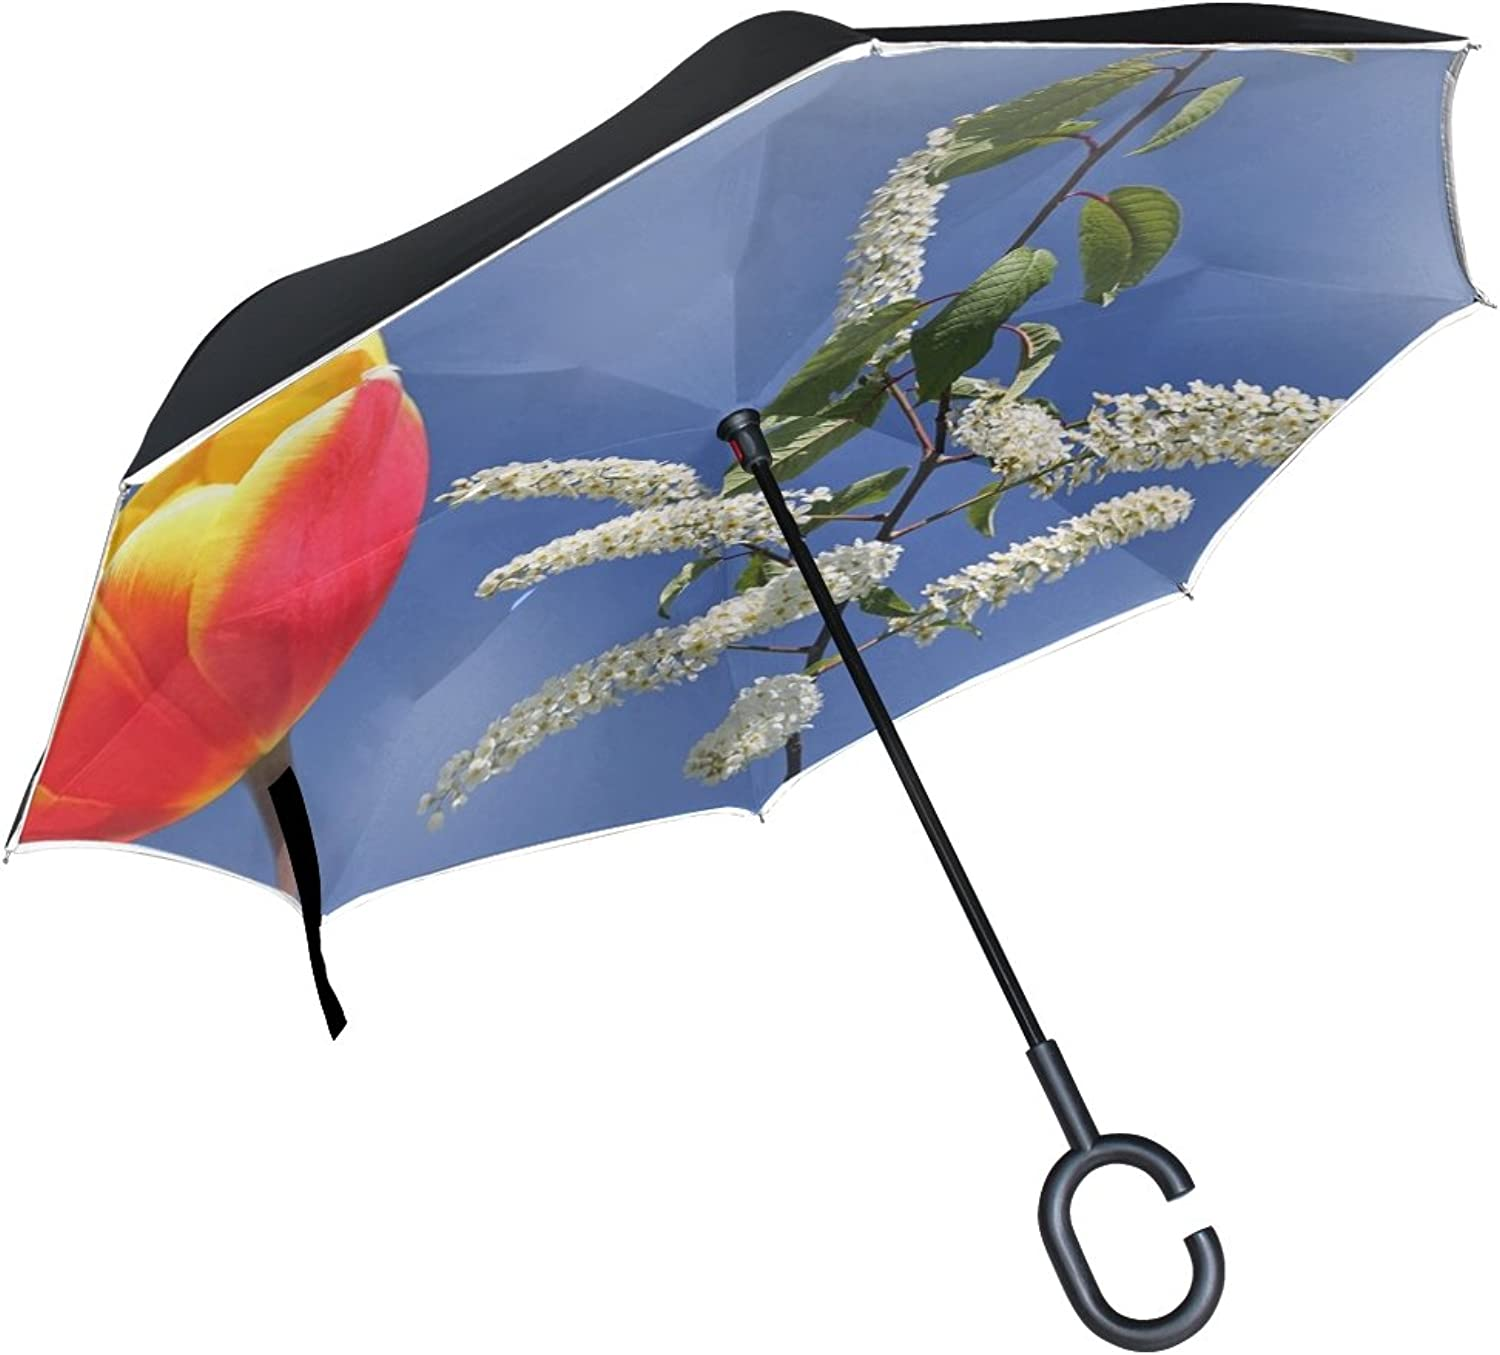 Double Layer Ingreened Nature Plant Flower Exotic Blossom Bloom blueee Umbrellas Reverse Folding Umbrella Windproof Uv Predection Big Straight Umbrella for Car Rain Outdoor with CShaped Handle